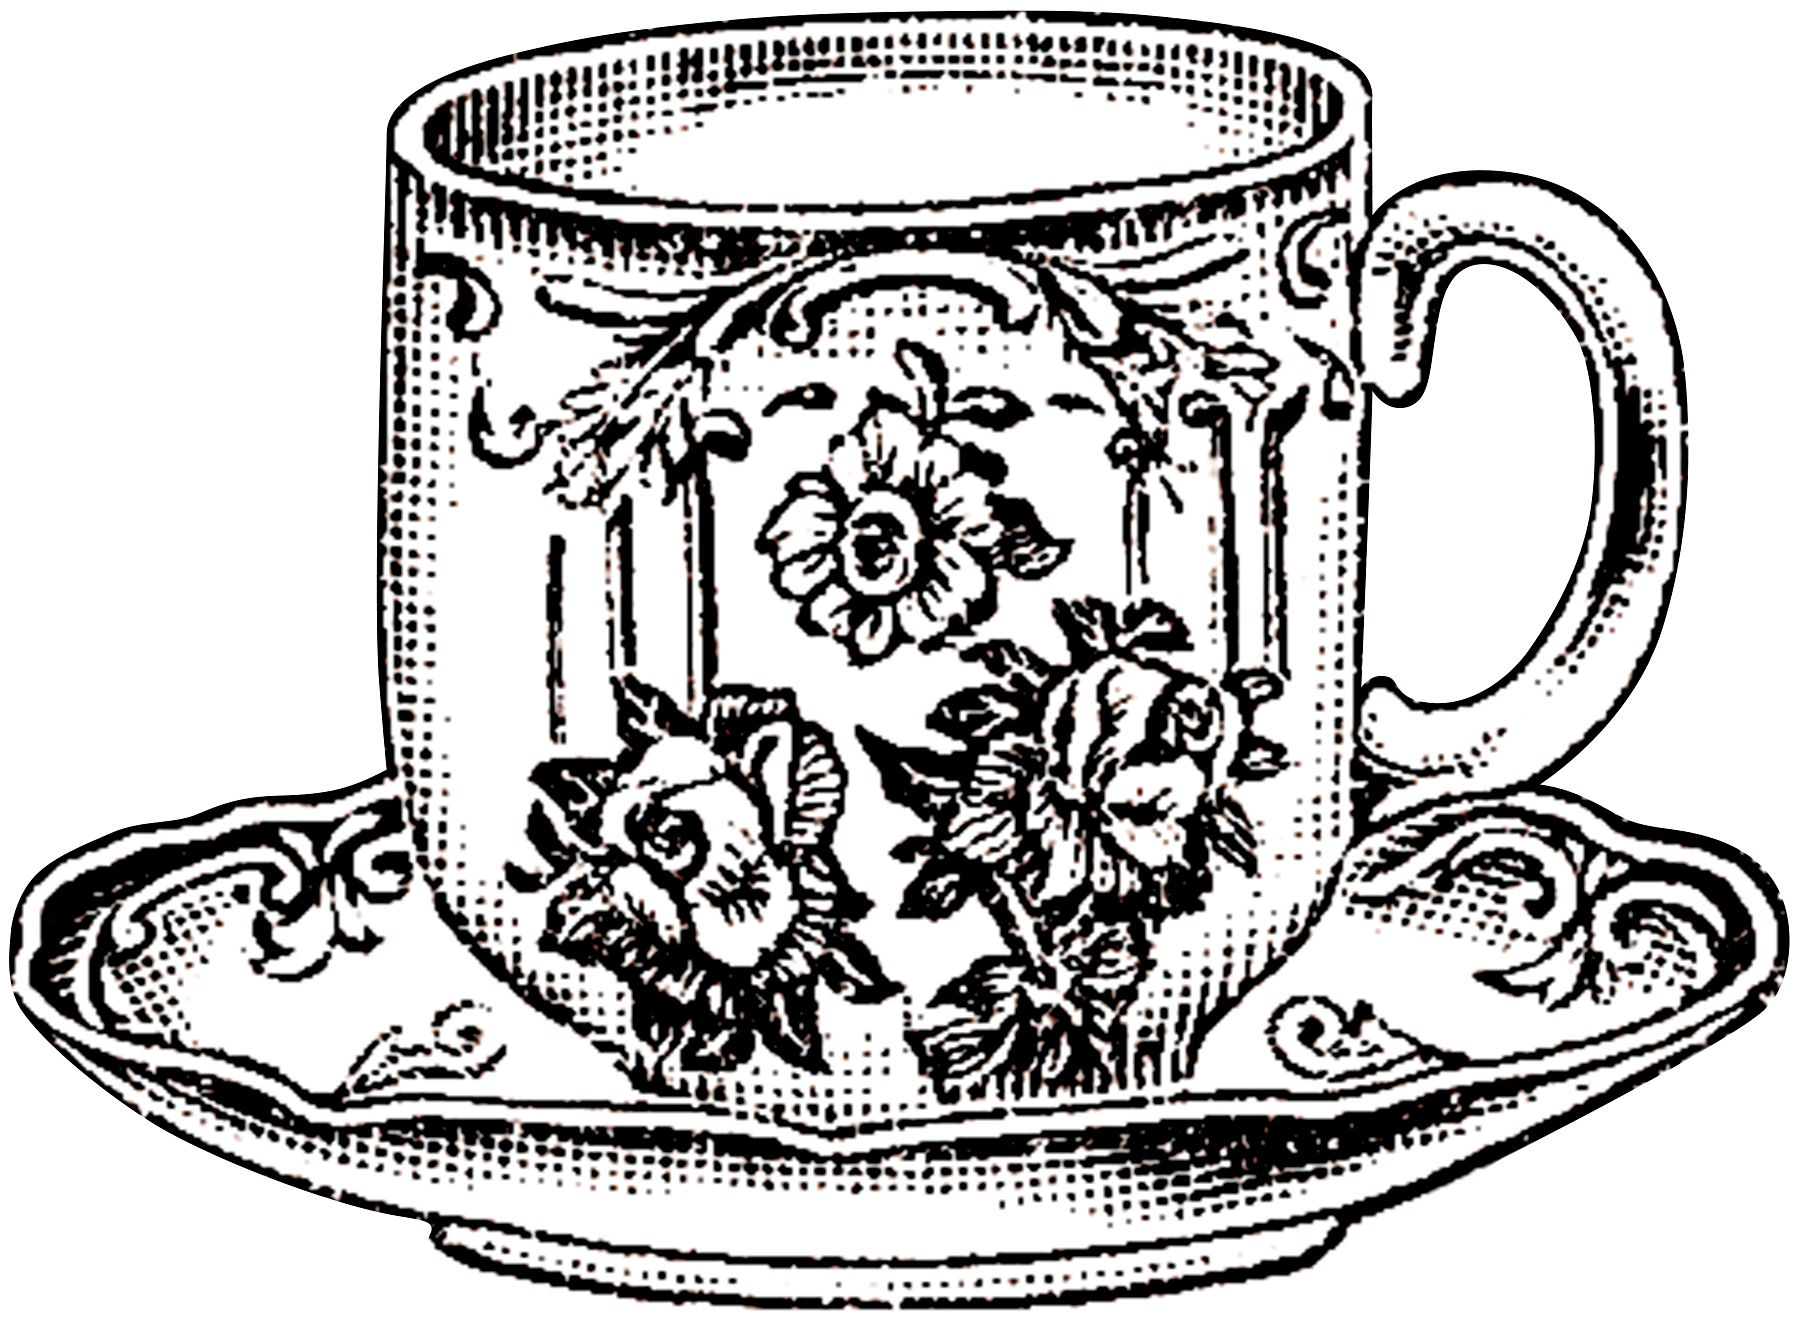 10 Black And White Teacup Clip Art Images